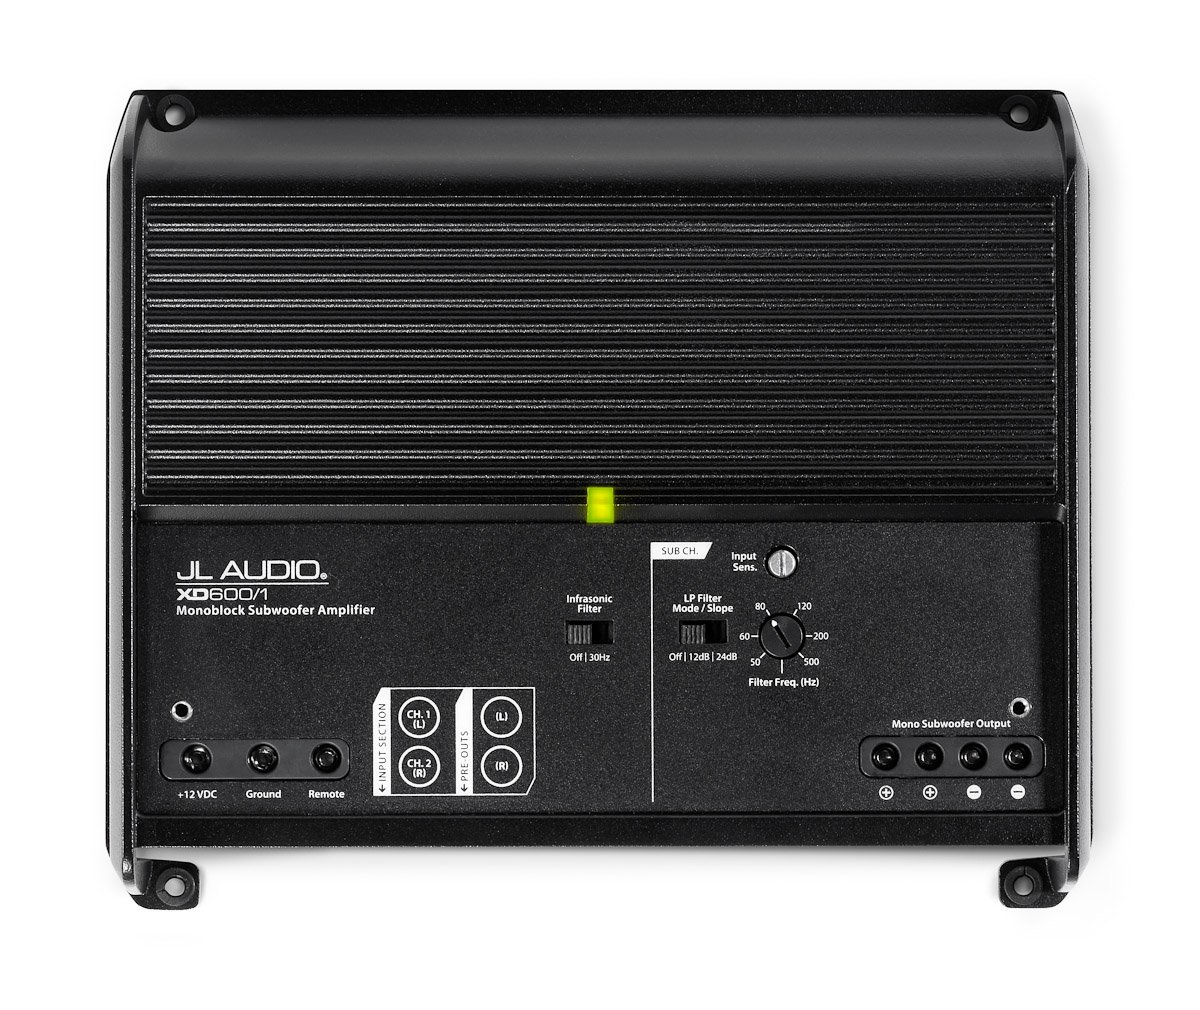 Amazon.com: XD600/1 - JL Audio 600 Watt Class D Monoblock Subwoofer  Amplifier: Cell Phones & Accessories